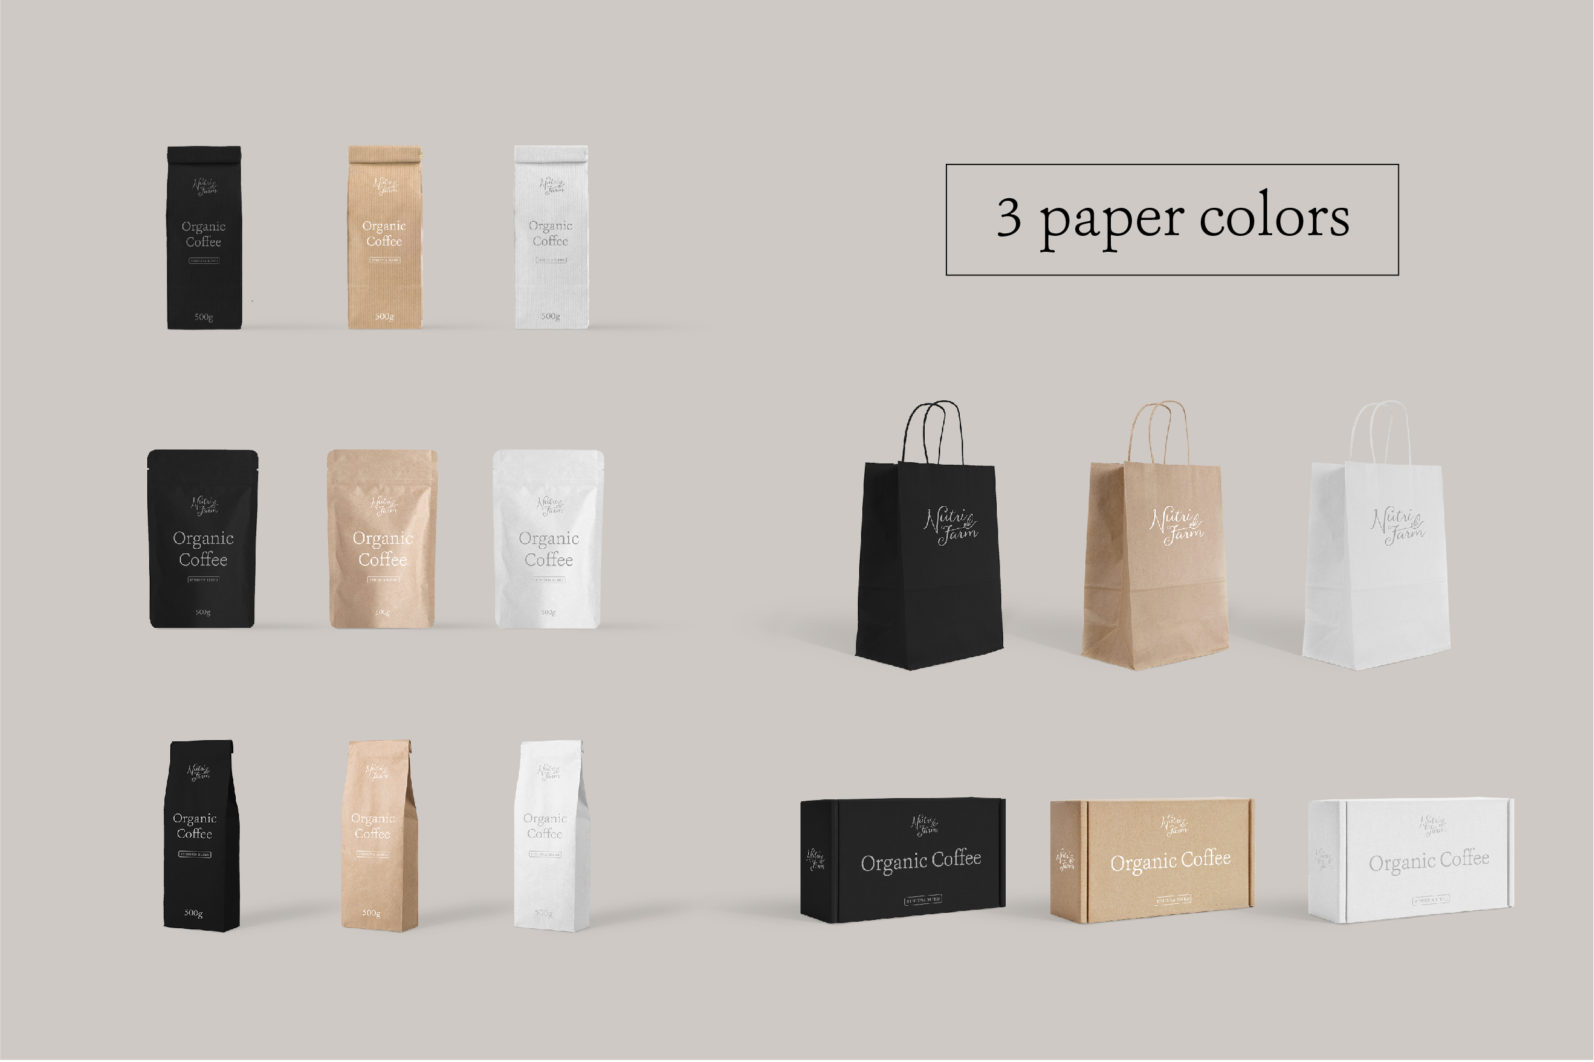 Package Mockup All Scenes - Min No.1 - Untitled 2 042 -